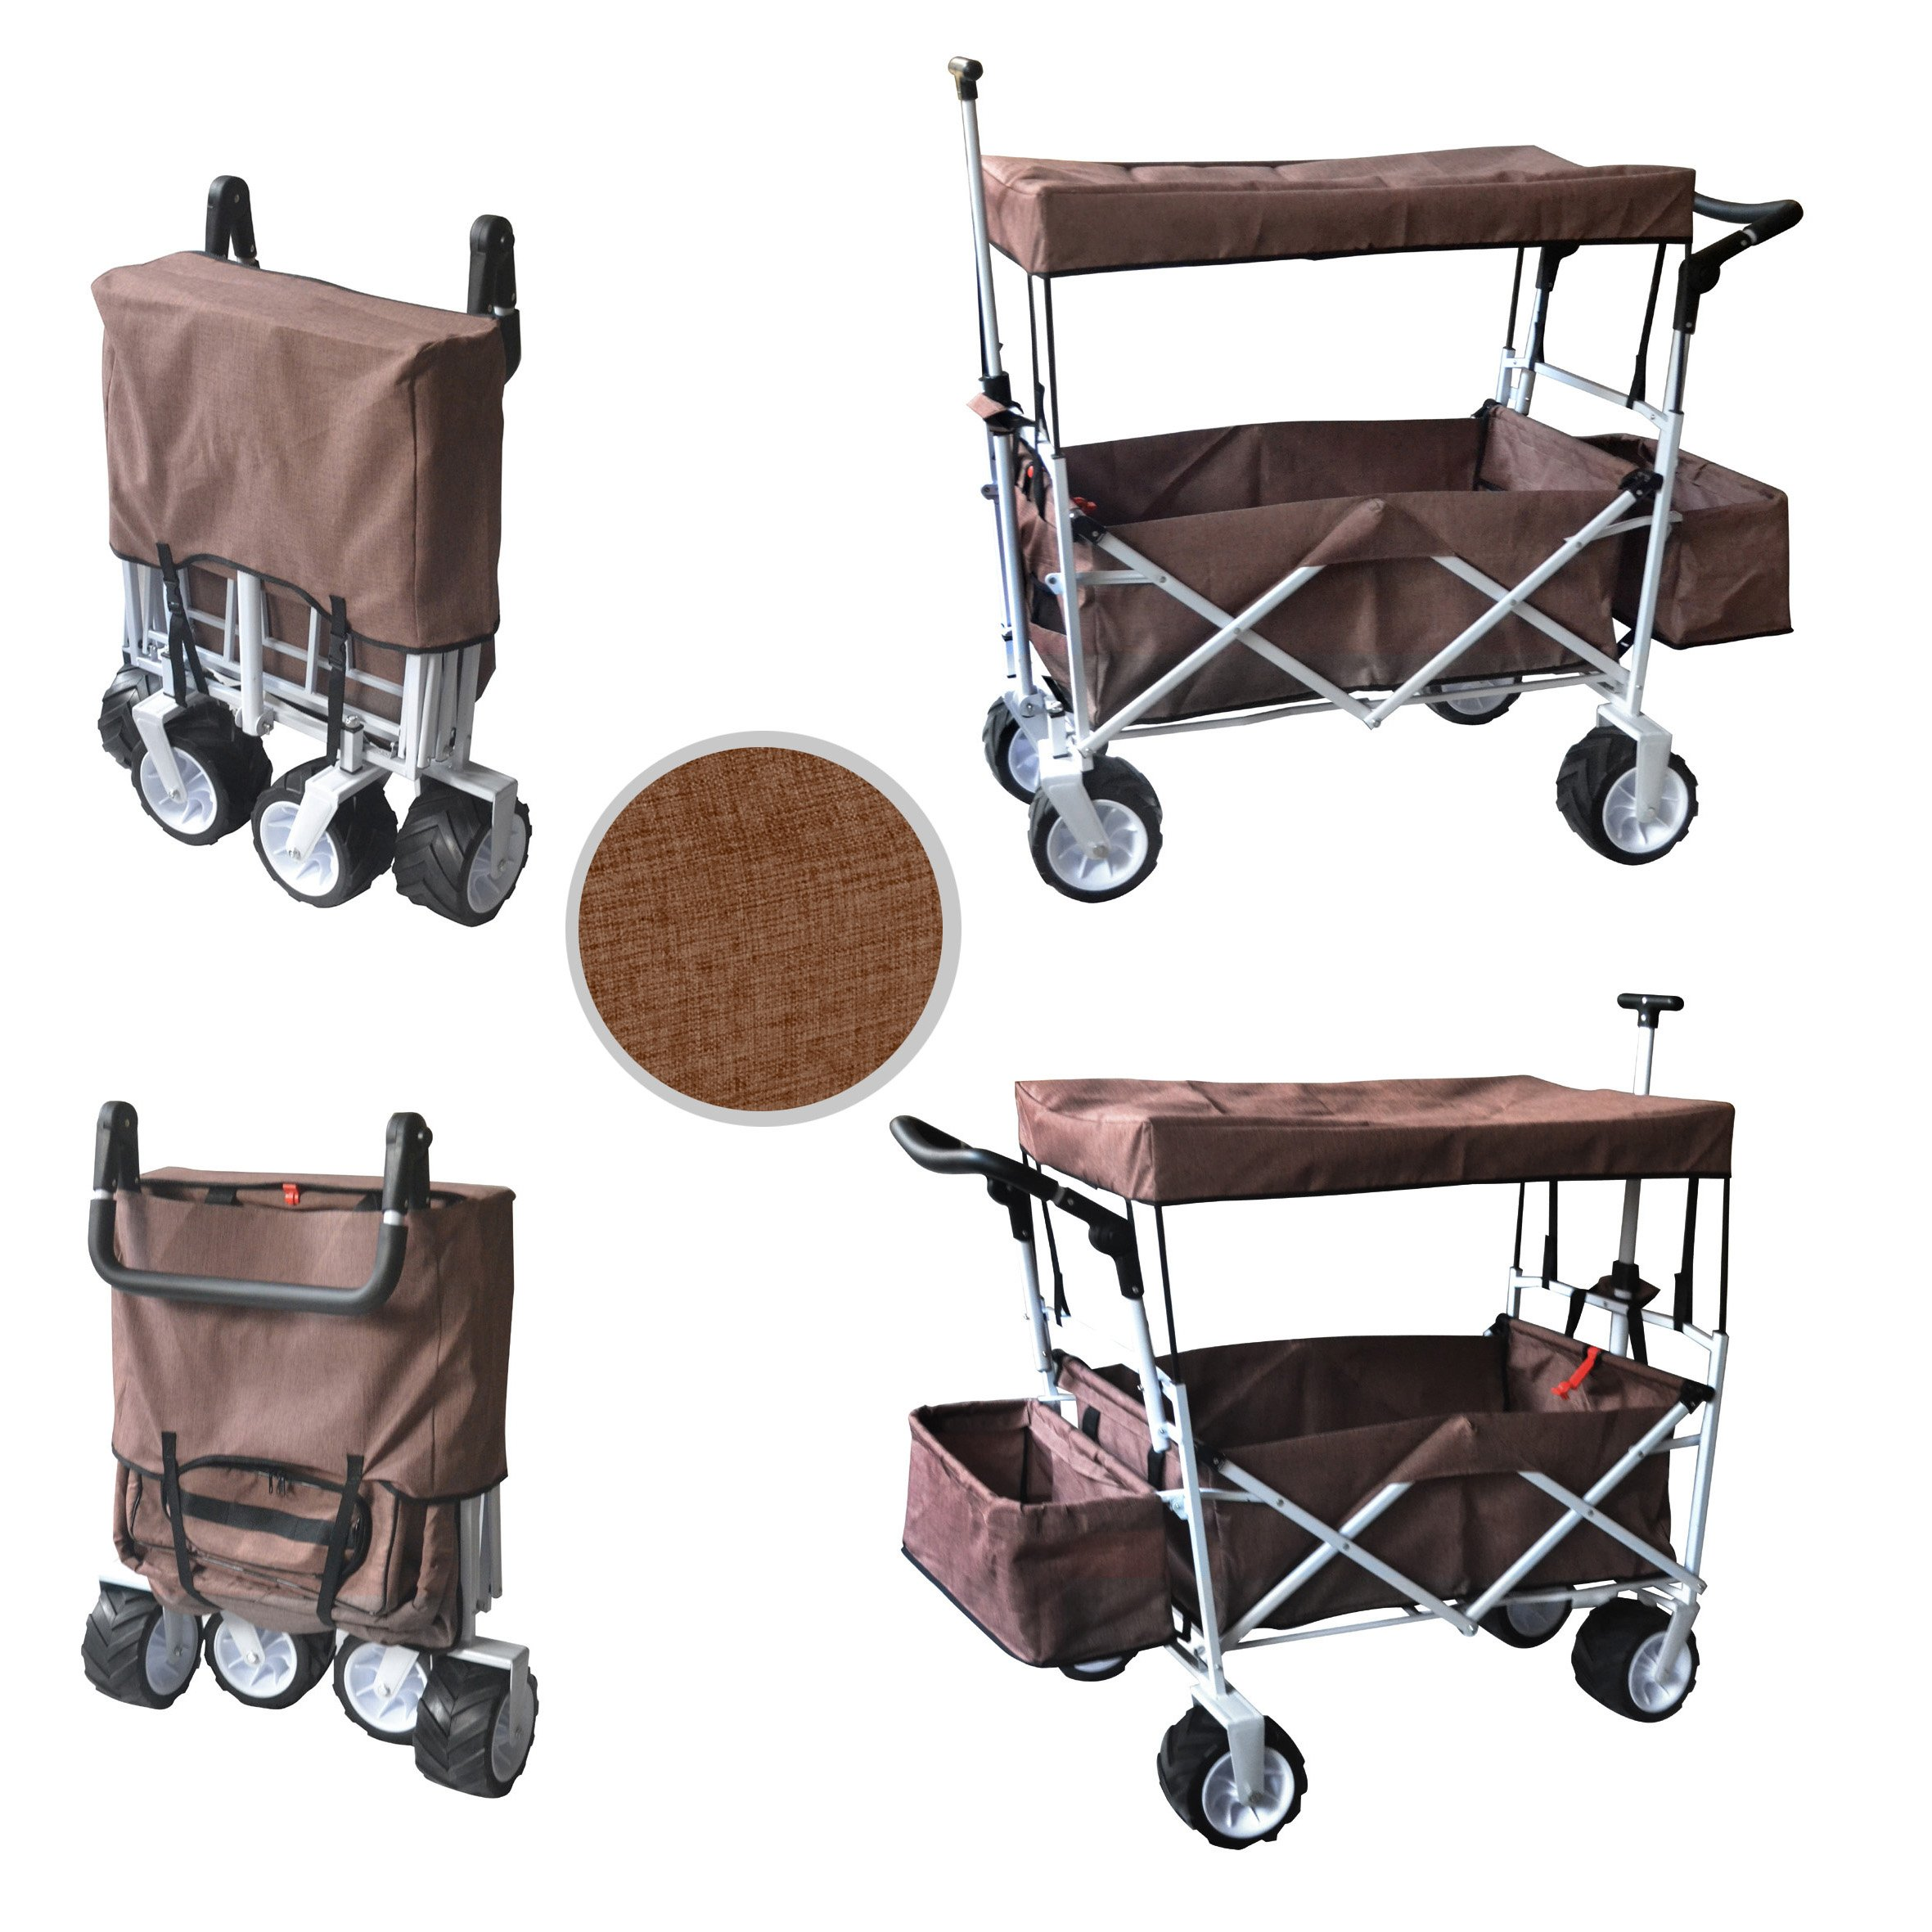 BROWN FREE ICE COOLER PUSH AND PULL HANDLE FOLDING BABY STROLLER WAGON OUTDOOR SPORT COLLAPSIBLE KIDS TROLLEY W/ CANOPY GARDEN UTILITY SHOPPING TRAVEL BEACH CART - EASY SETUP NO TOOL NECESSARY